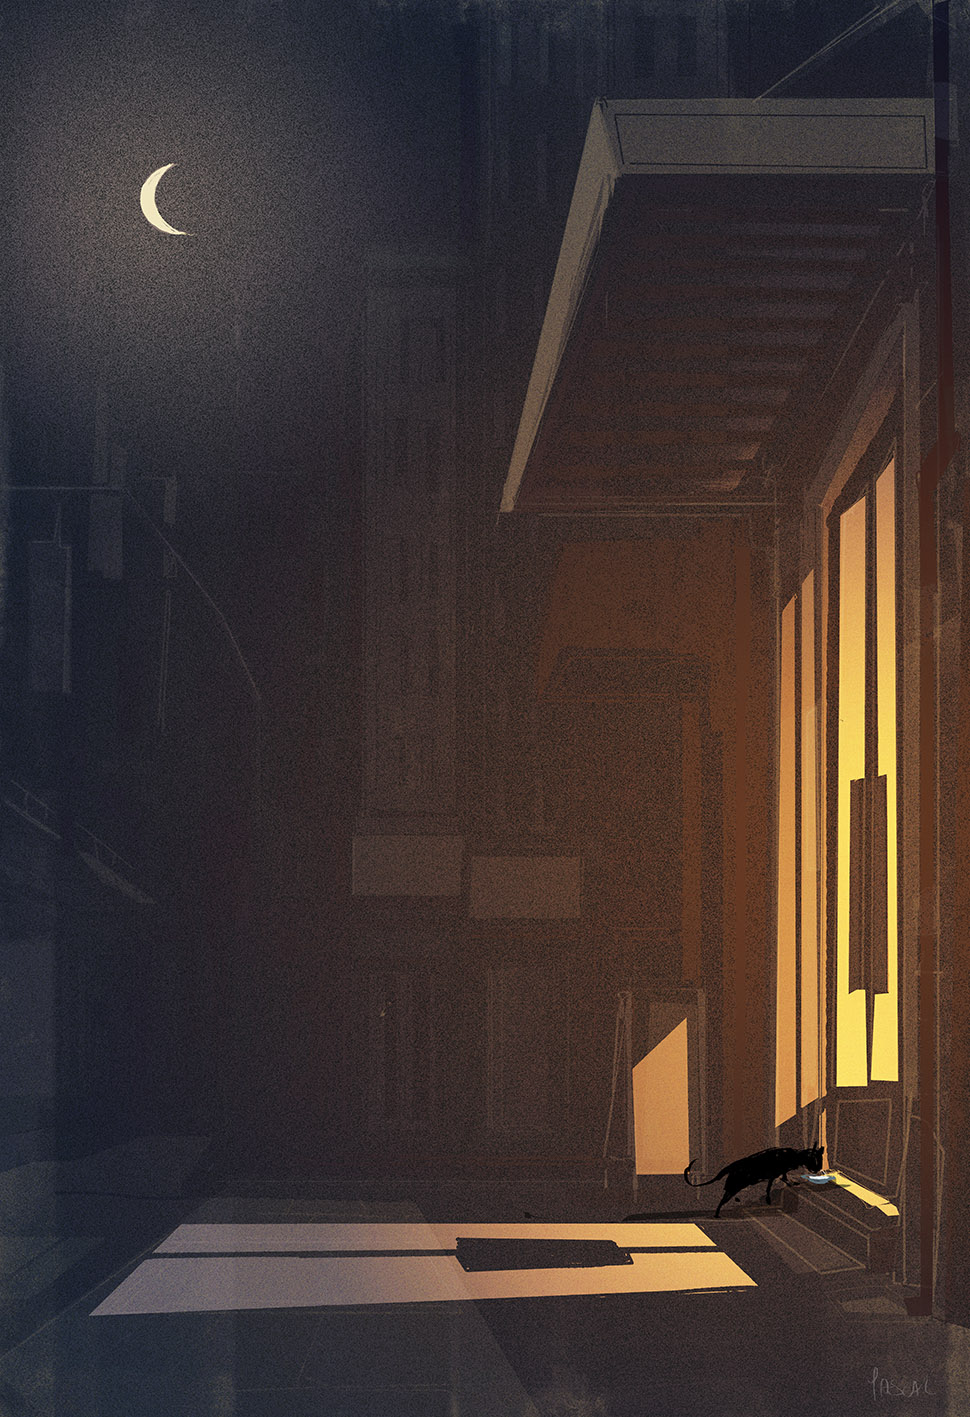 The cat came back. by PascalCampion